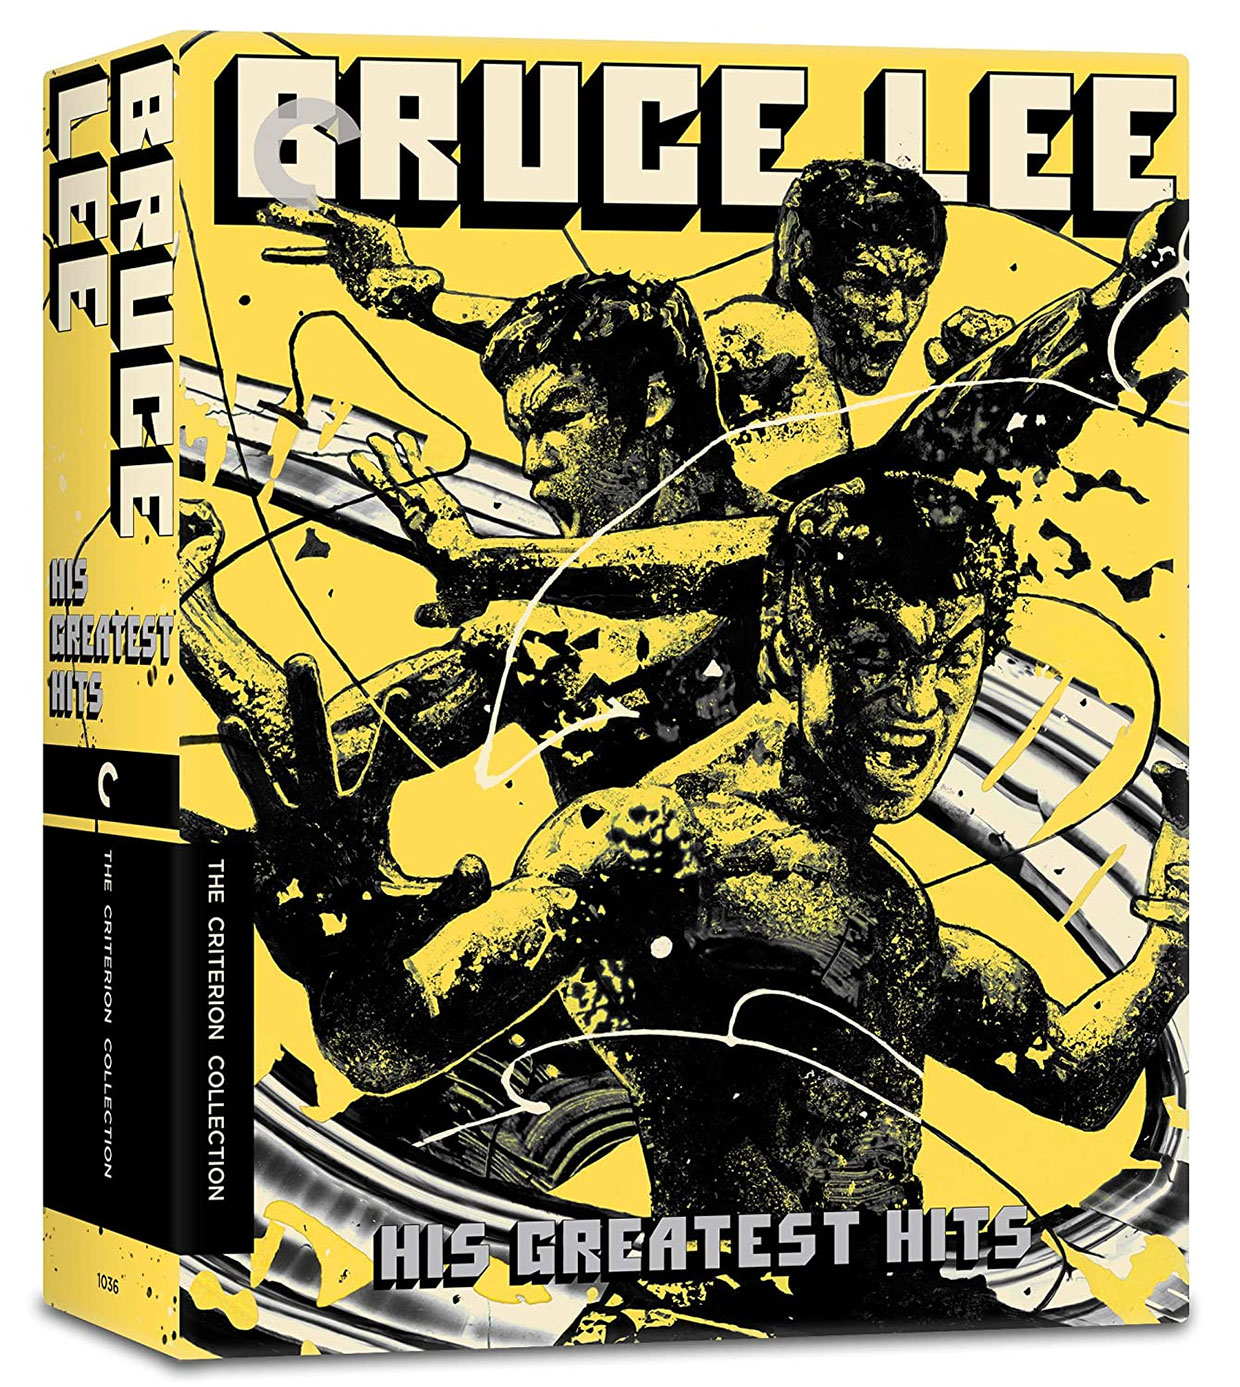 Bruce Lee: His Greatest Hits